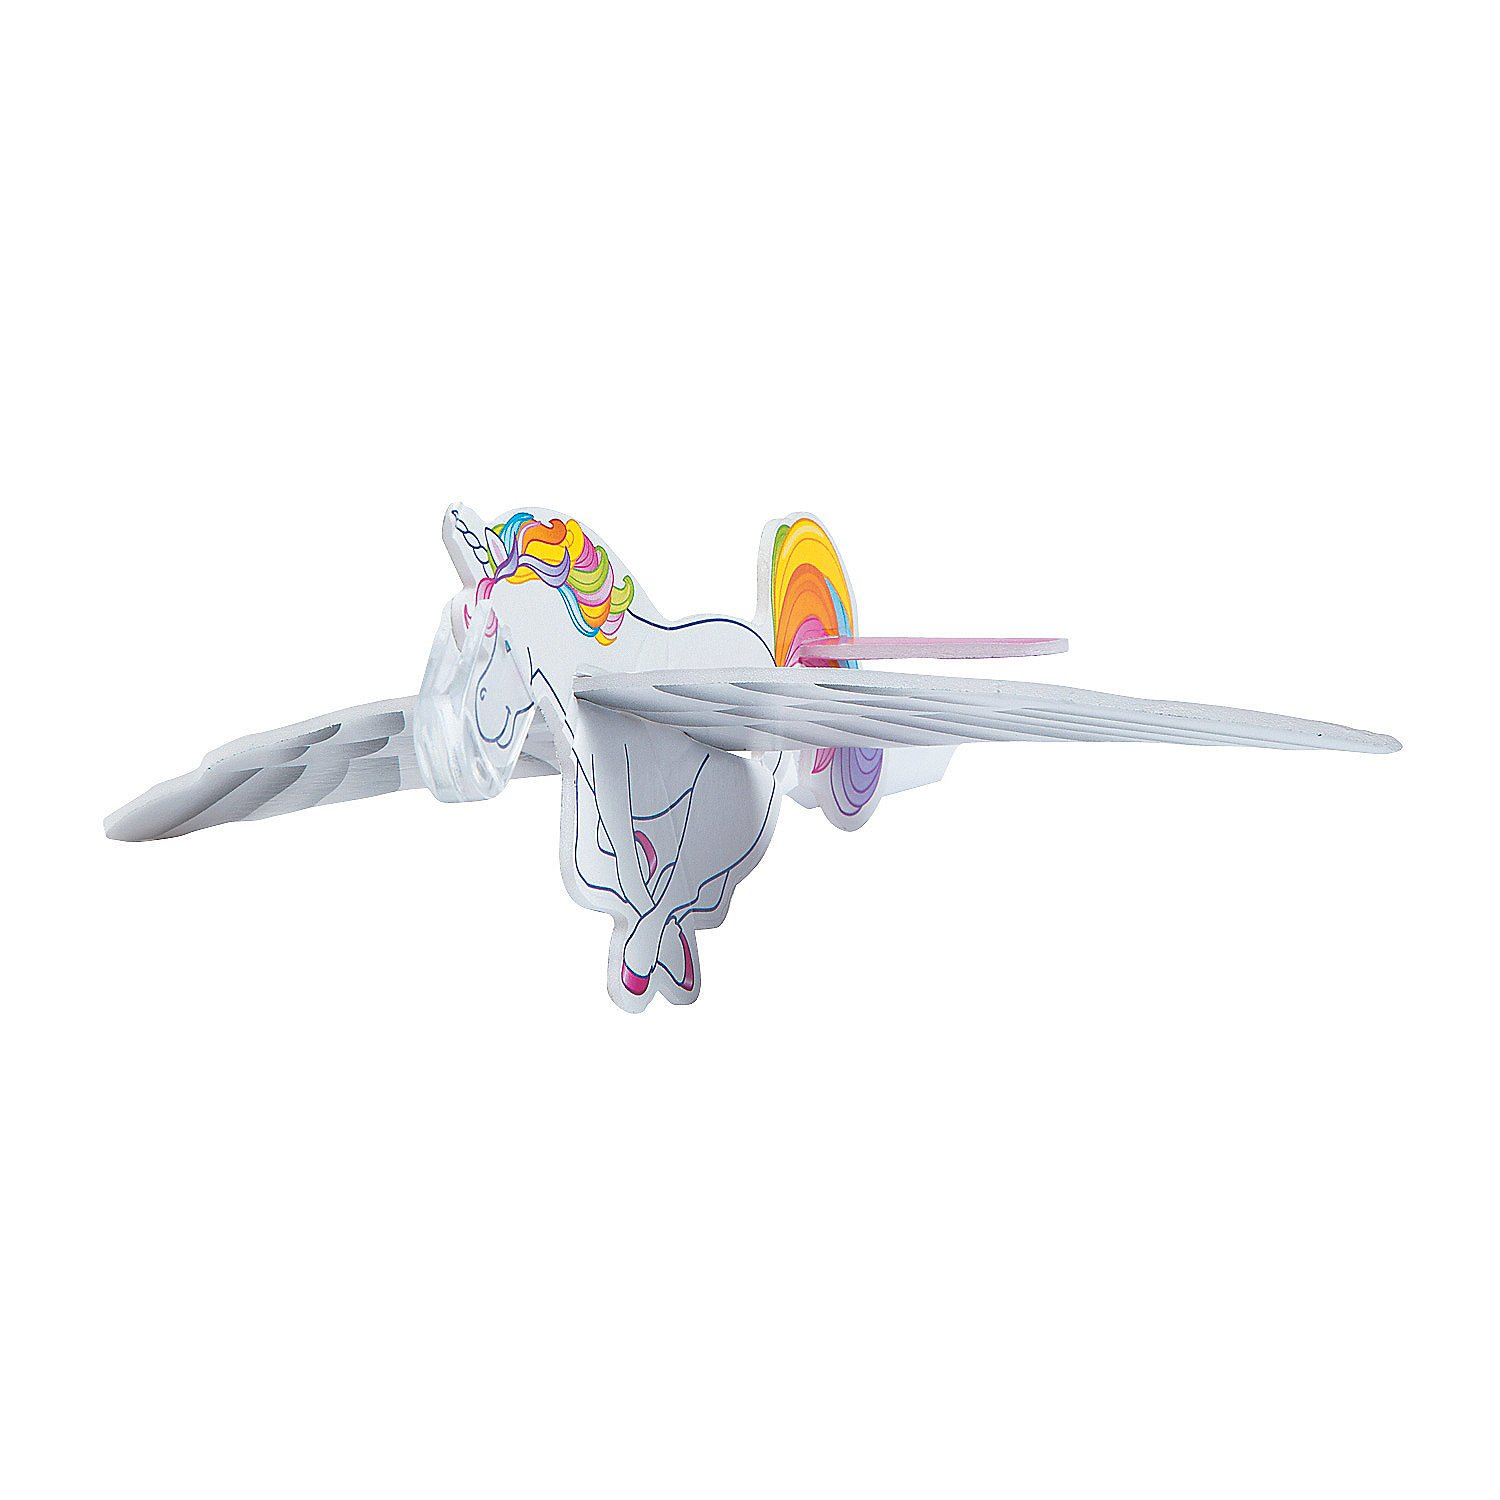 Fun Express - Unicorn Gliders - Toys - Vehicles - Gliders - 48 Pieces by Fun Express